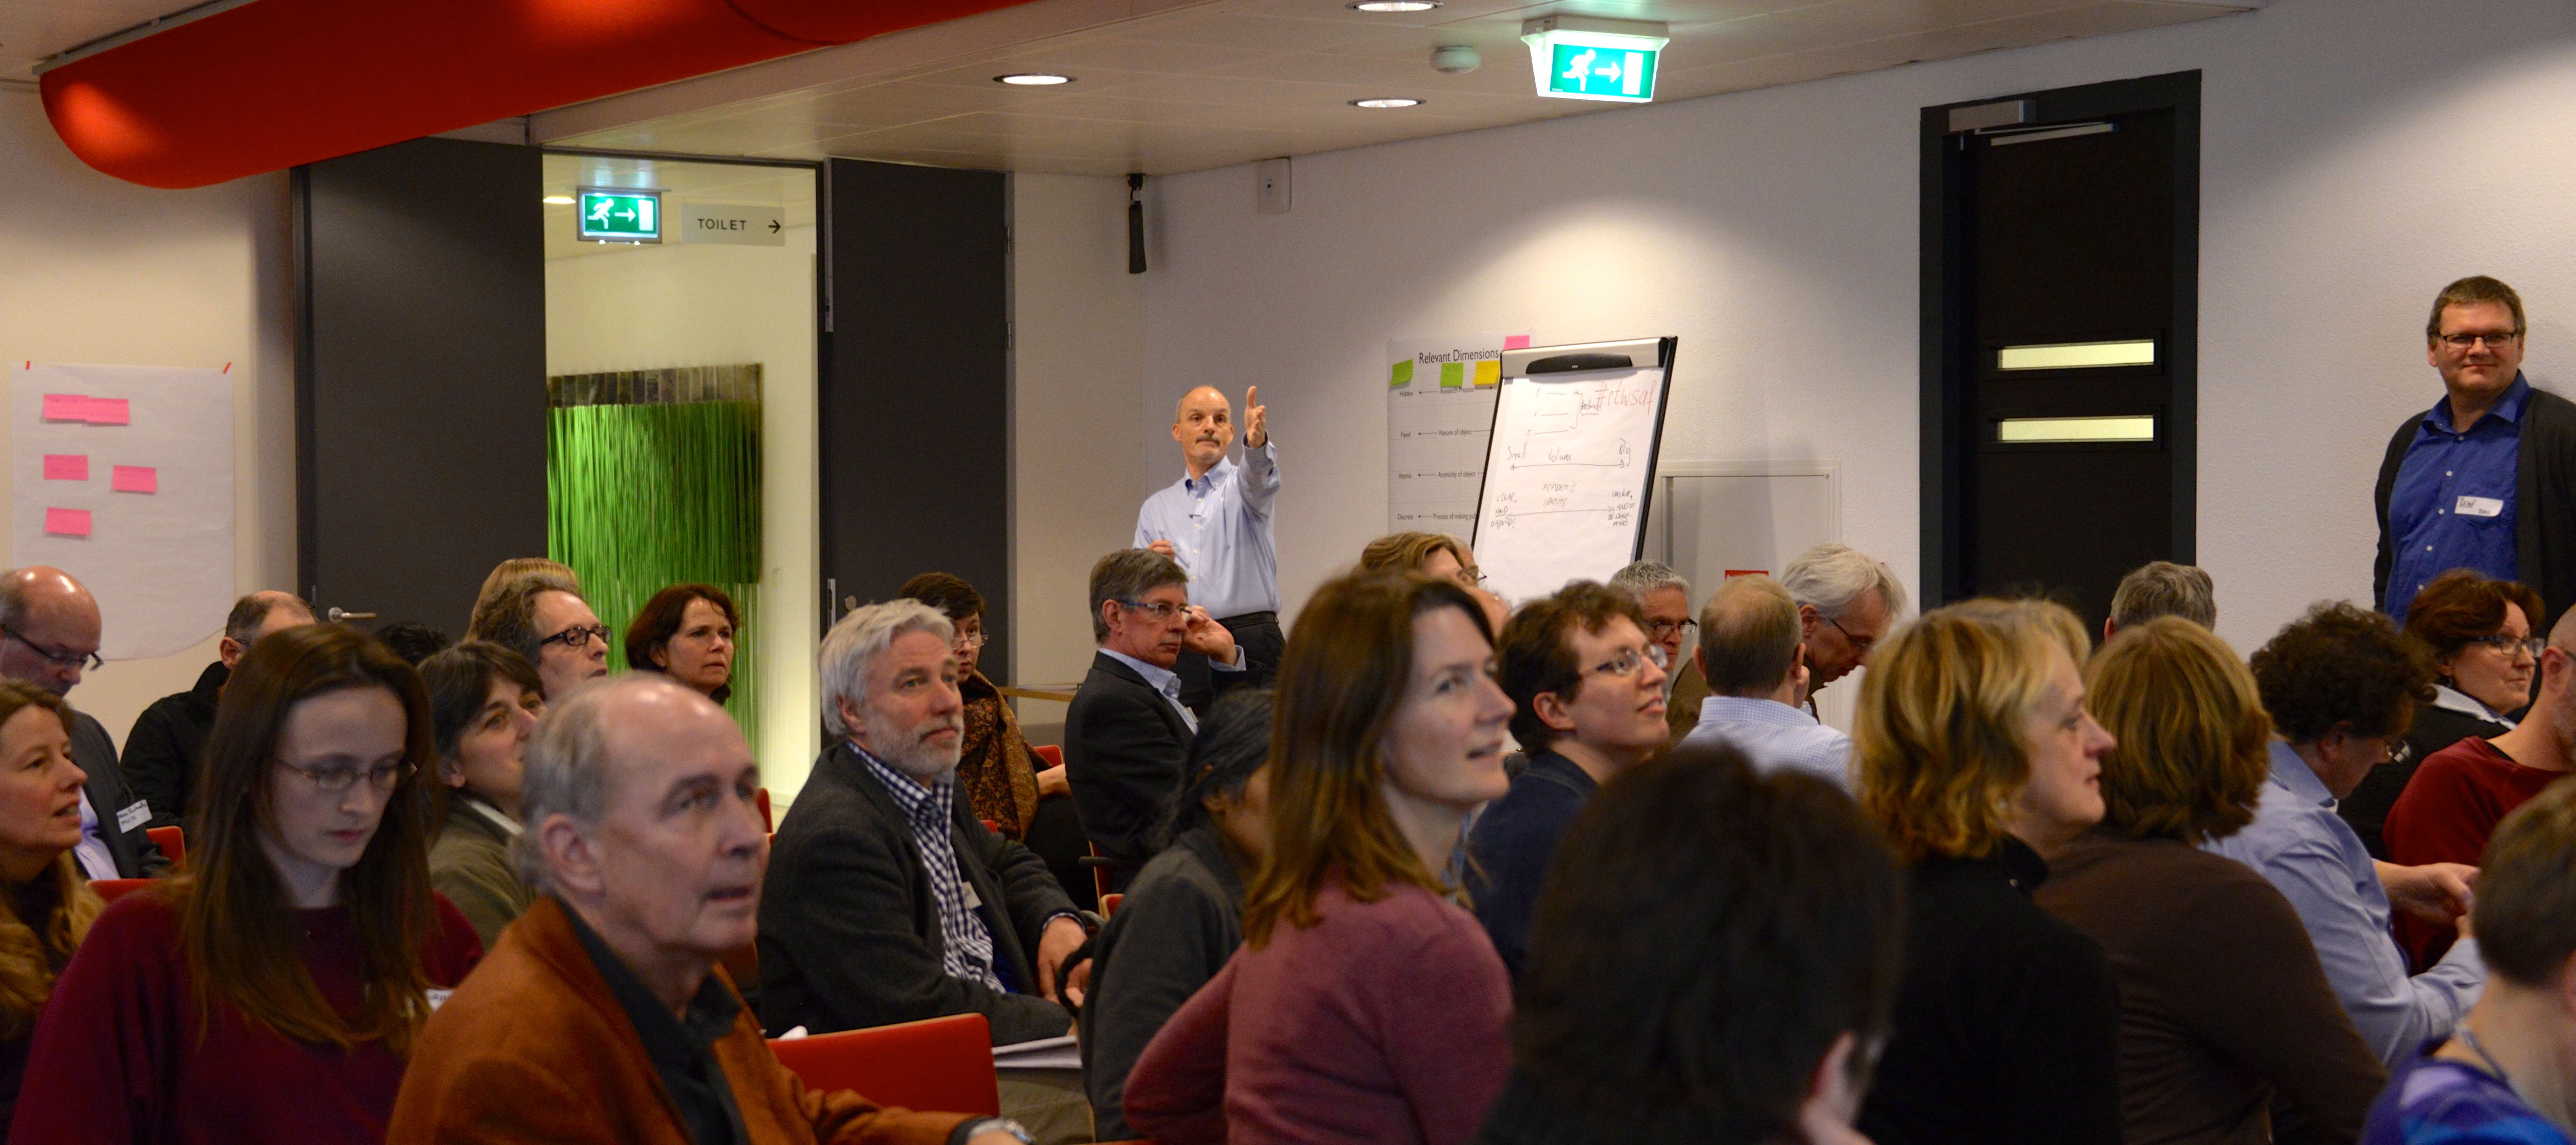 Andrew Treloar (at the back) captivating his audience